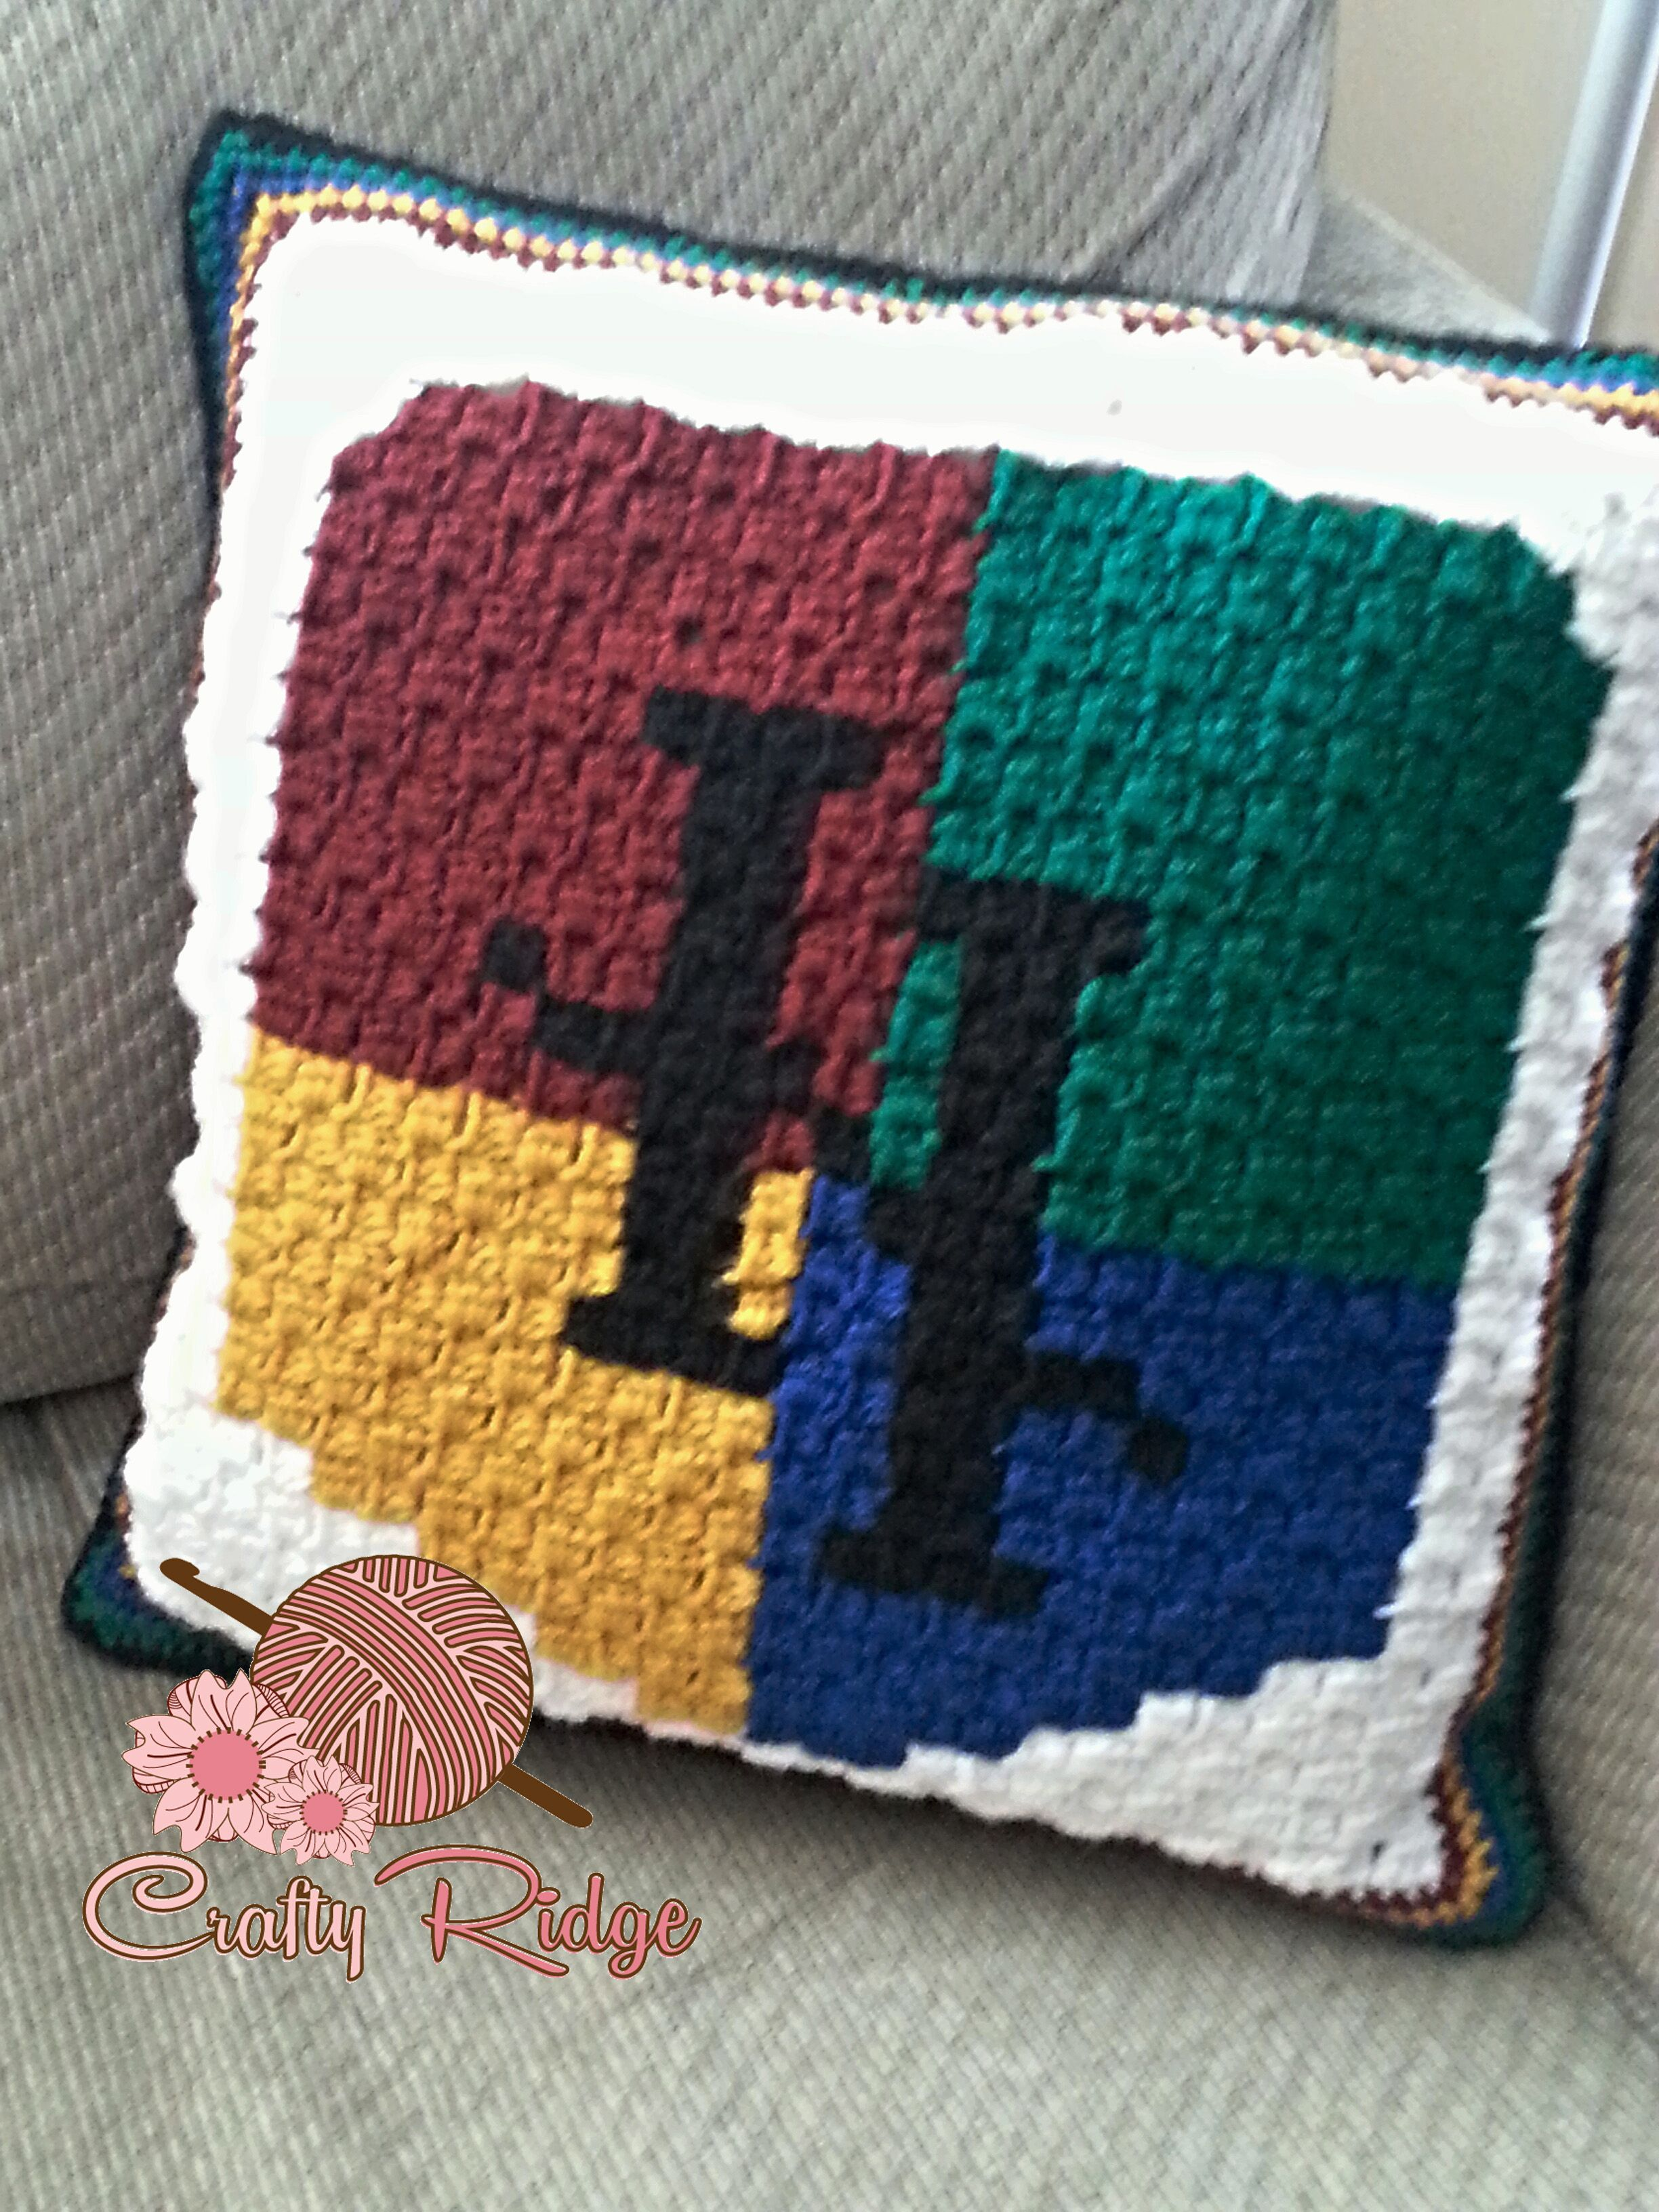 My Very Own Potter Pillow! | Free pattern, Harry potter and Crafty